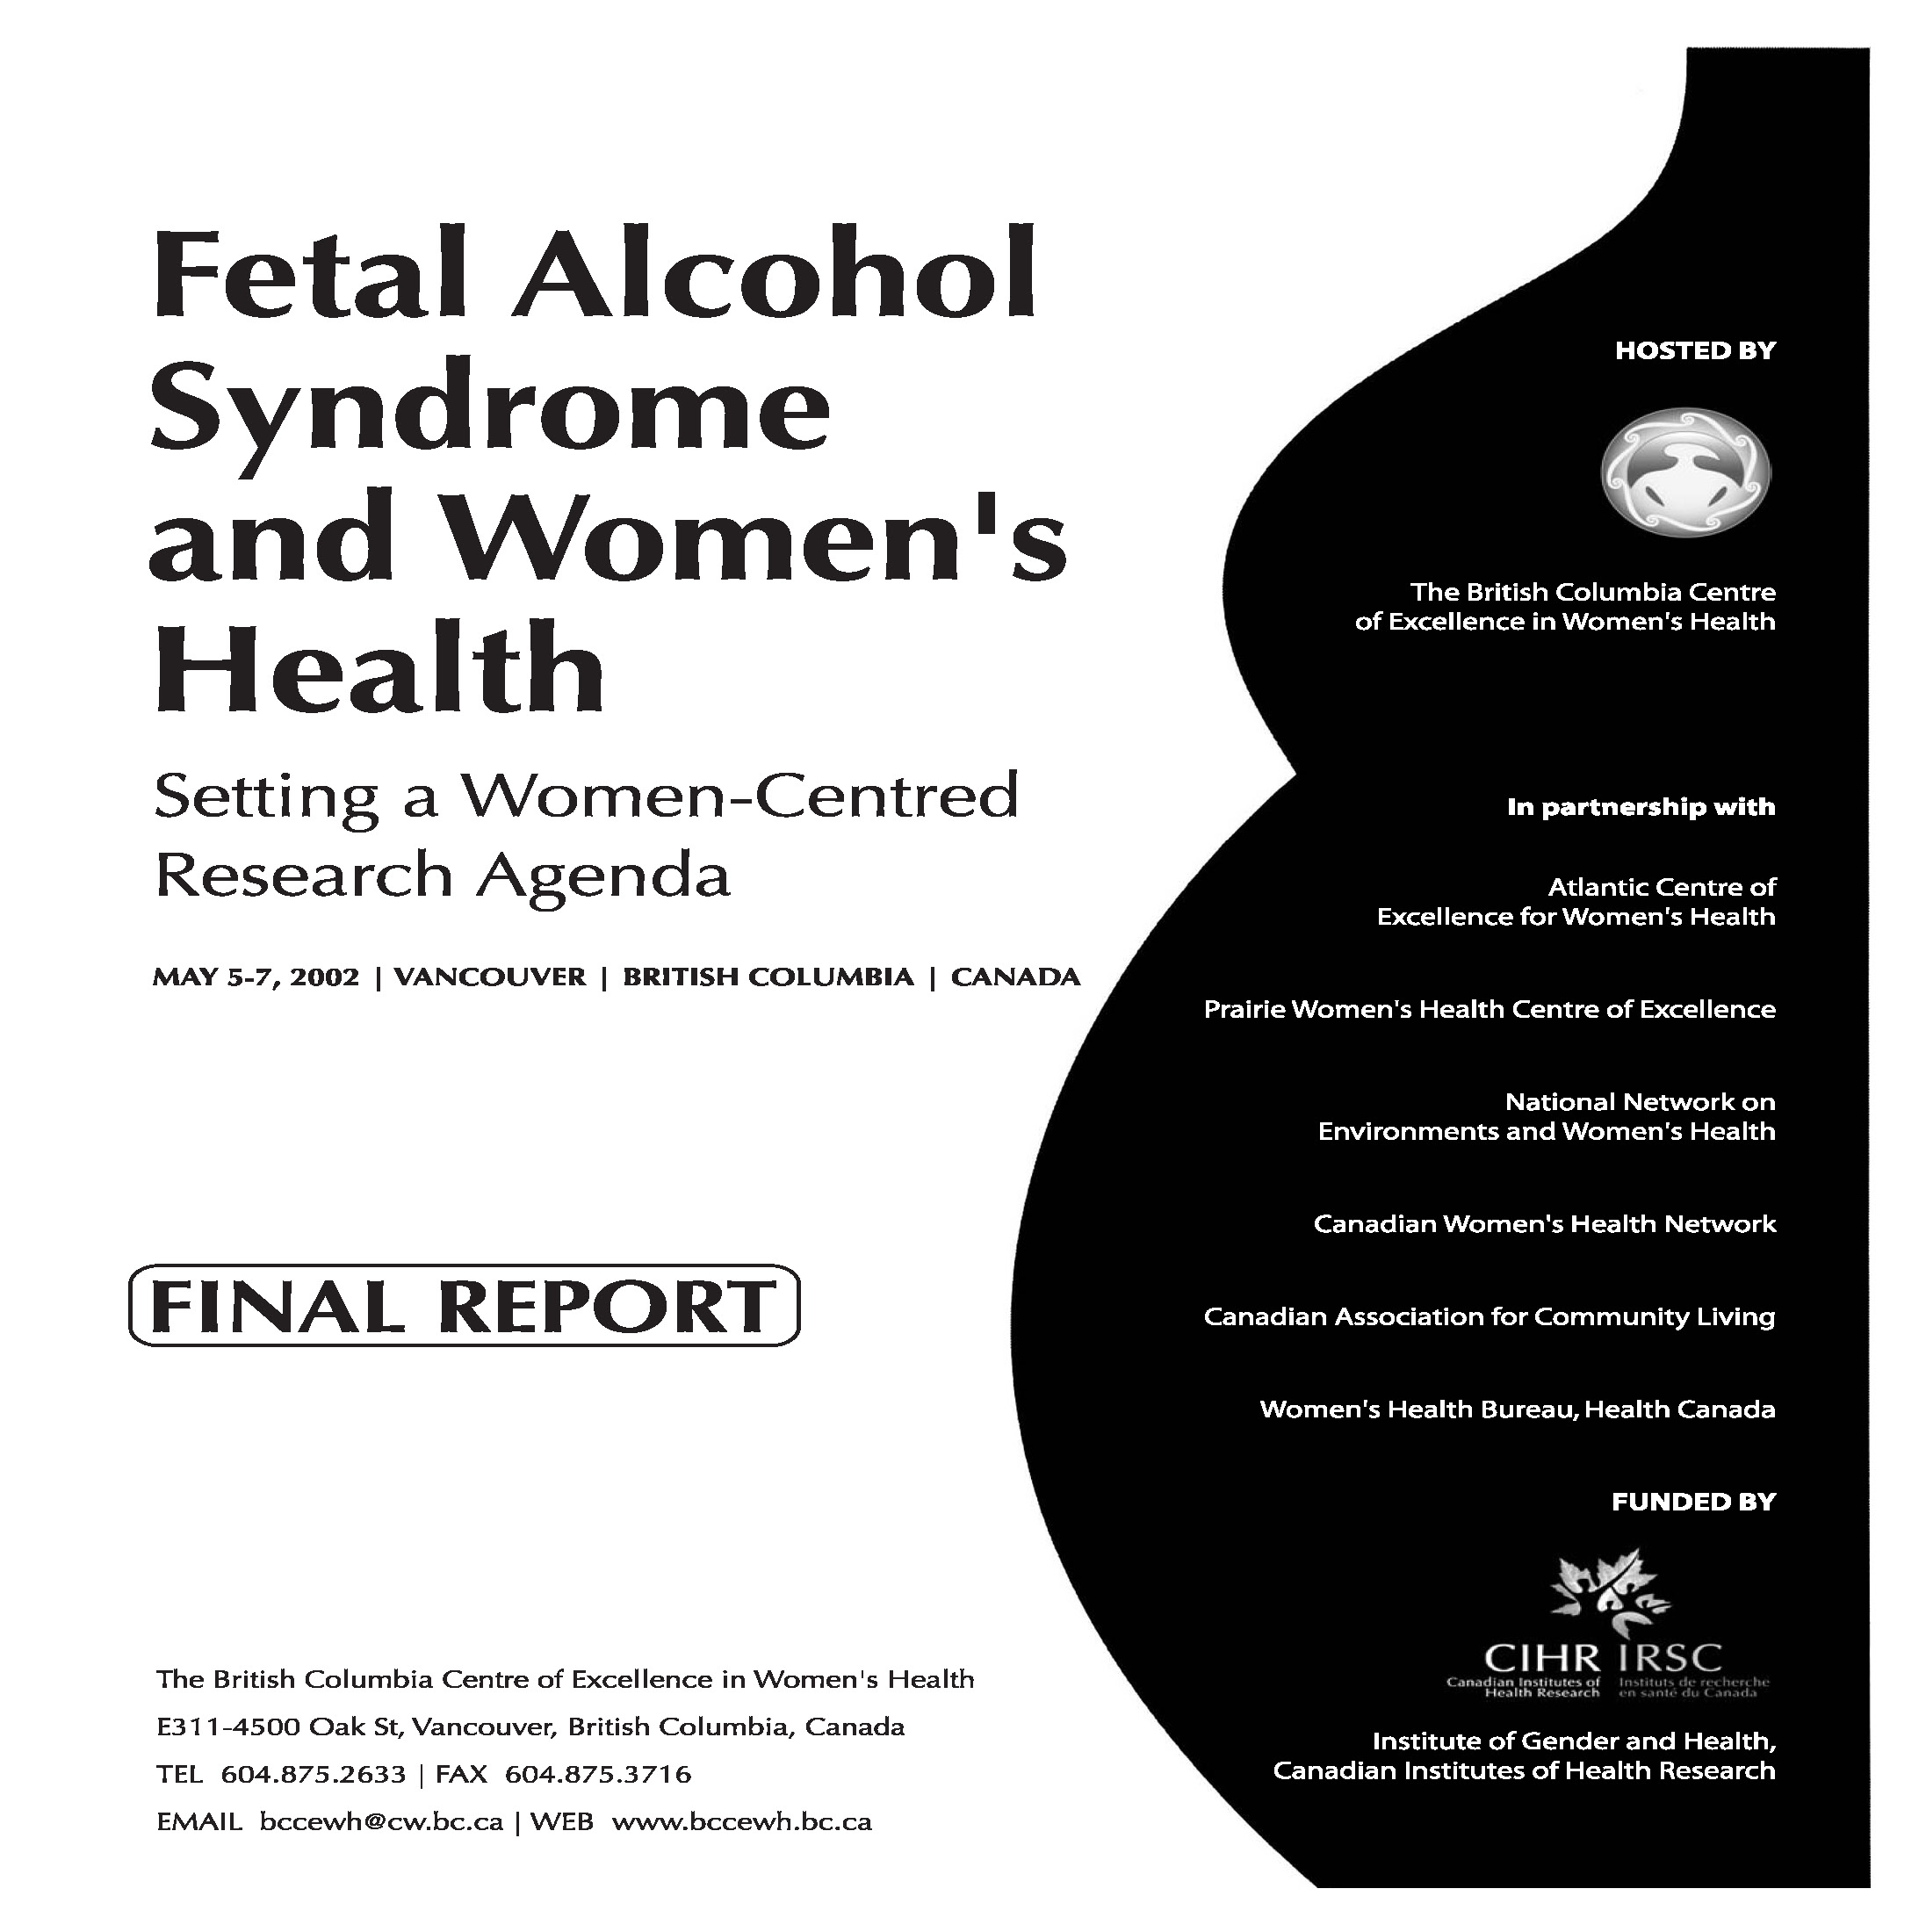 Essay papers on fetal alcohol syndrome